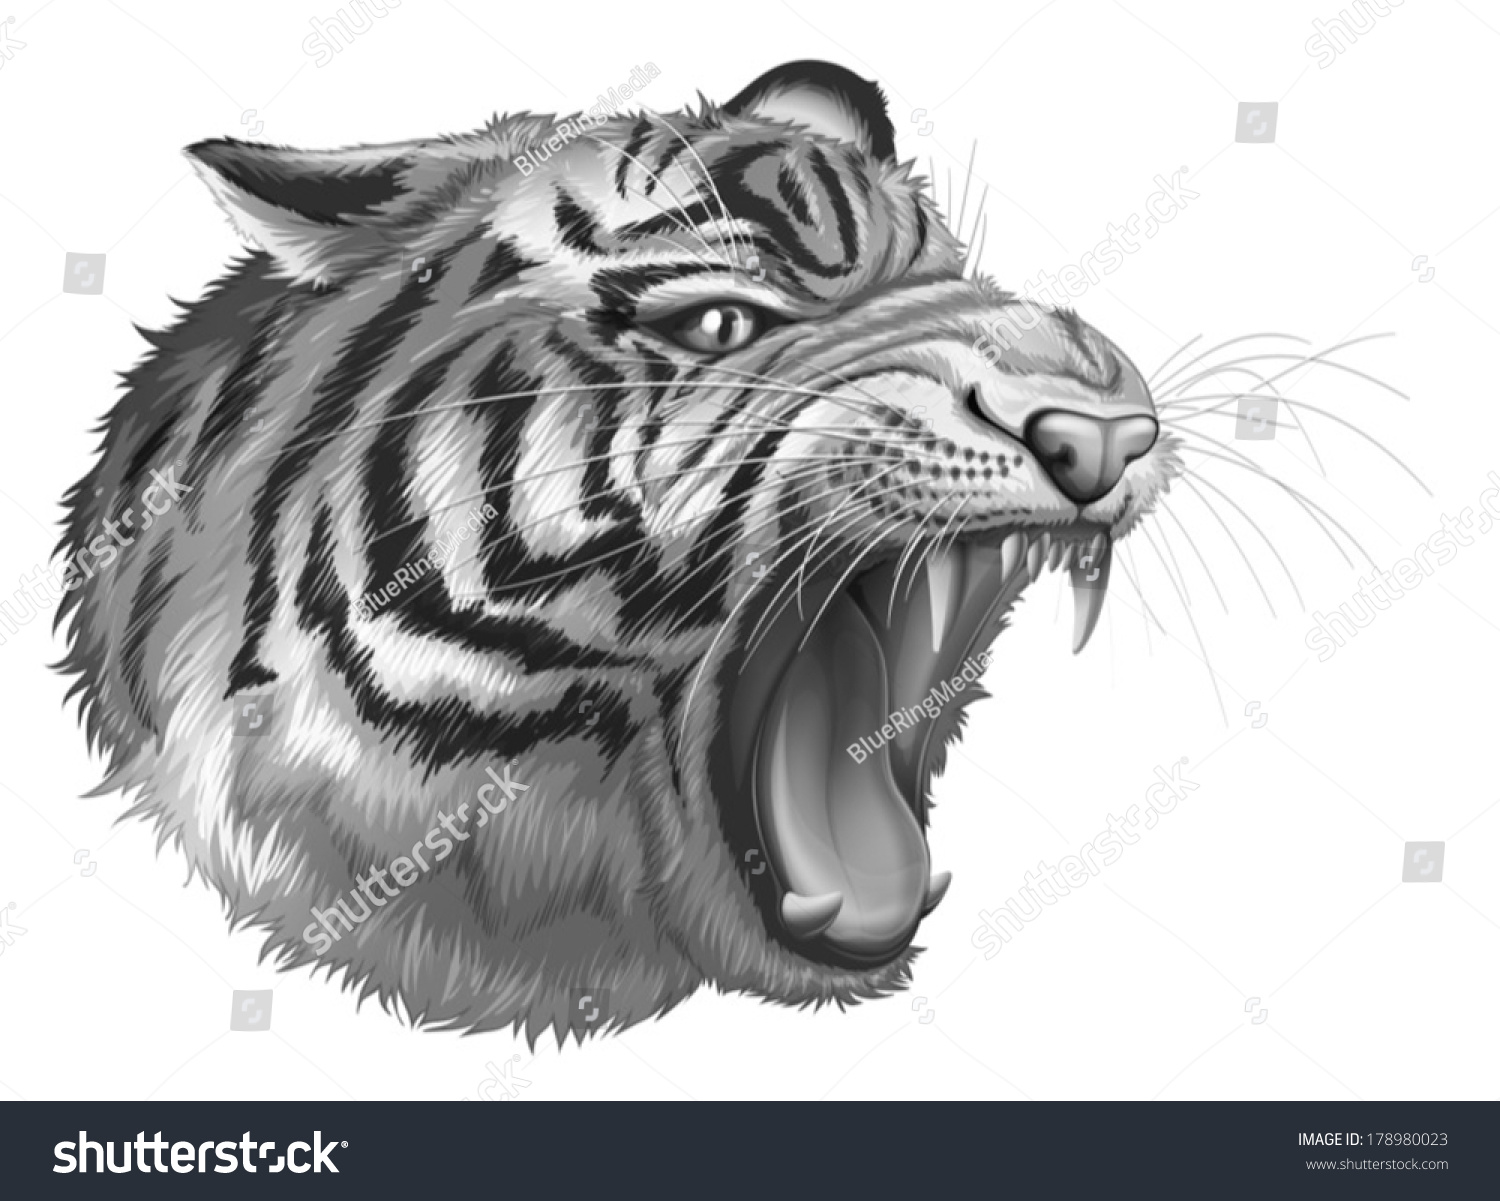 illustration grey tiger roaring on white stock vector 178980023